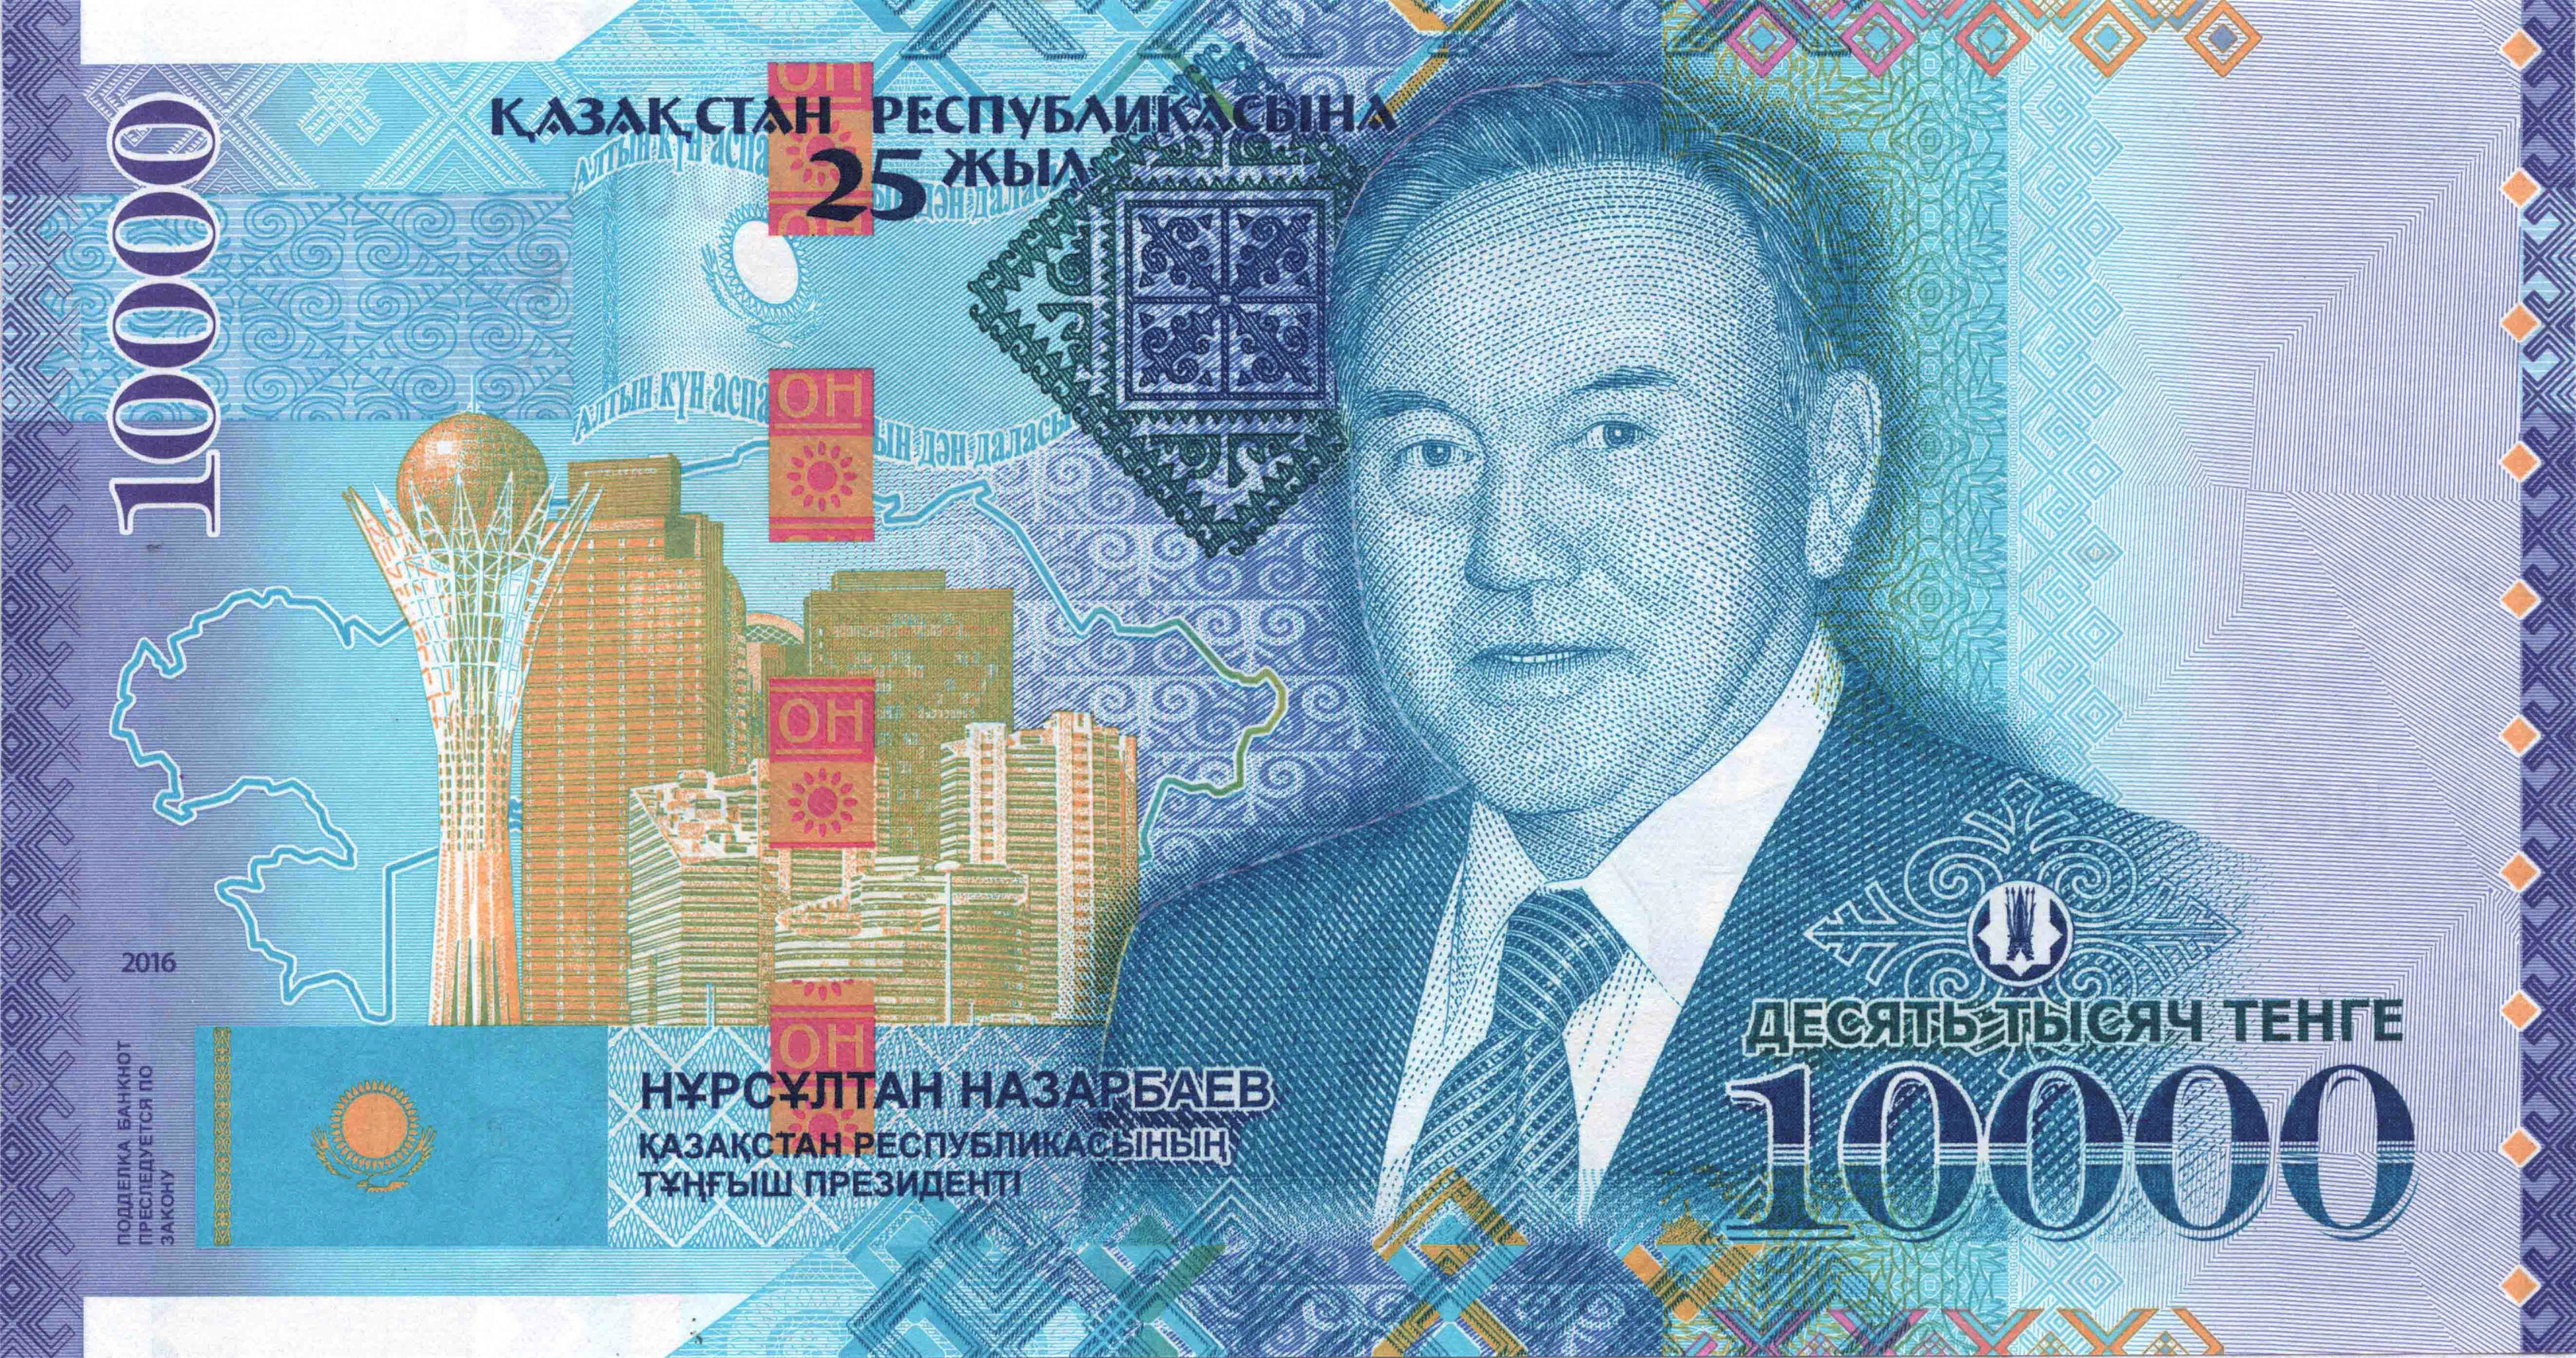 Kazakh leader appears on banknote for first time